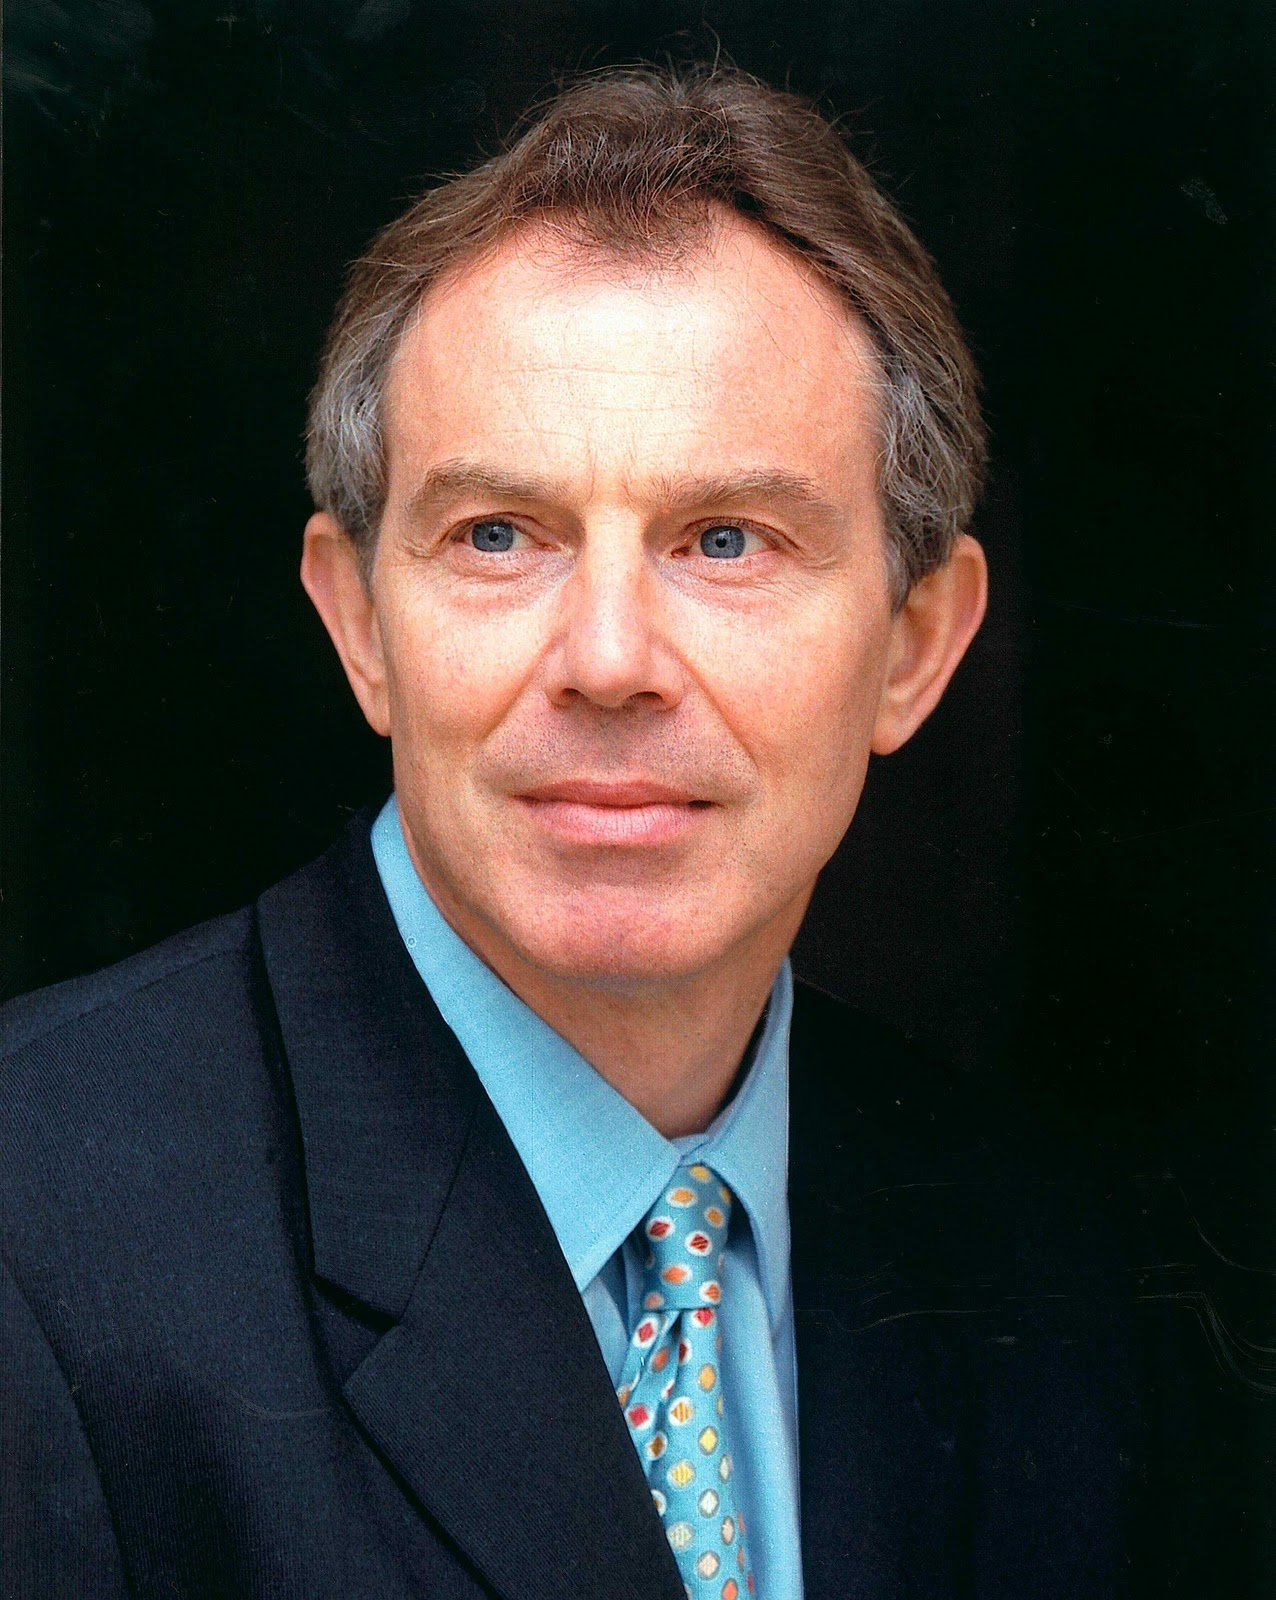 tony blair Former british prime minister tony blair said he saw a 40% chance of brexit  being reversed before march next year.